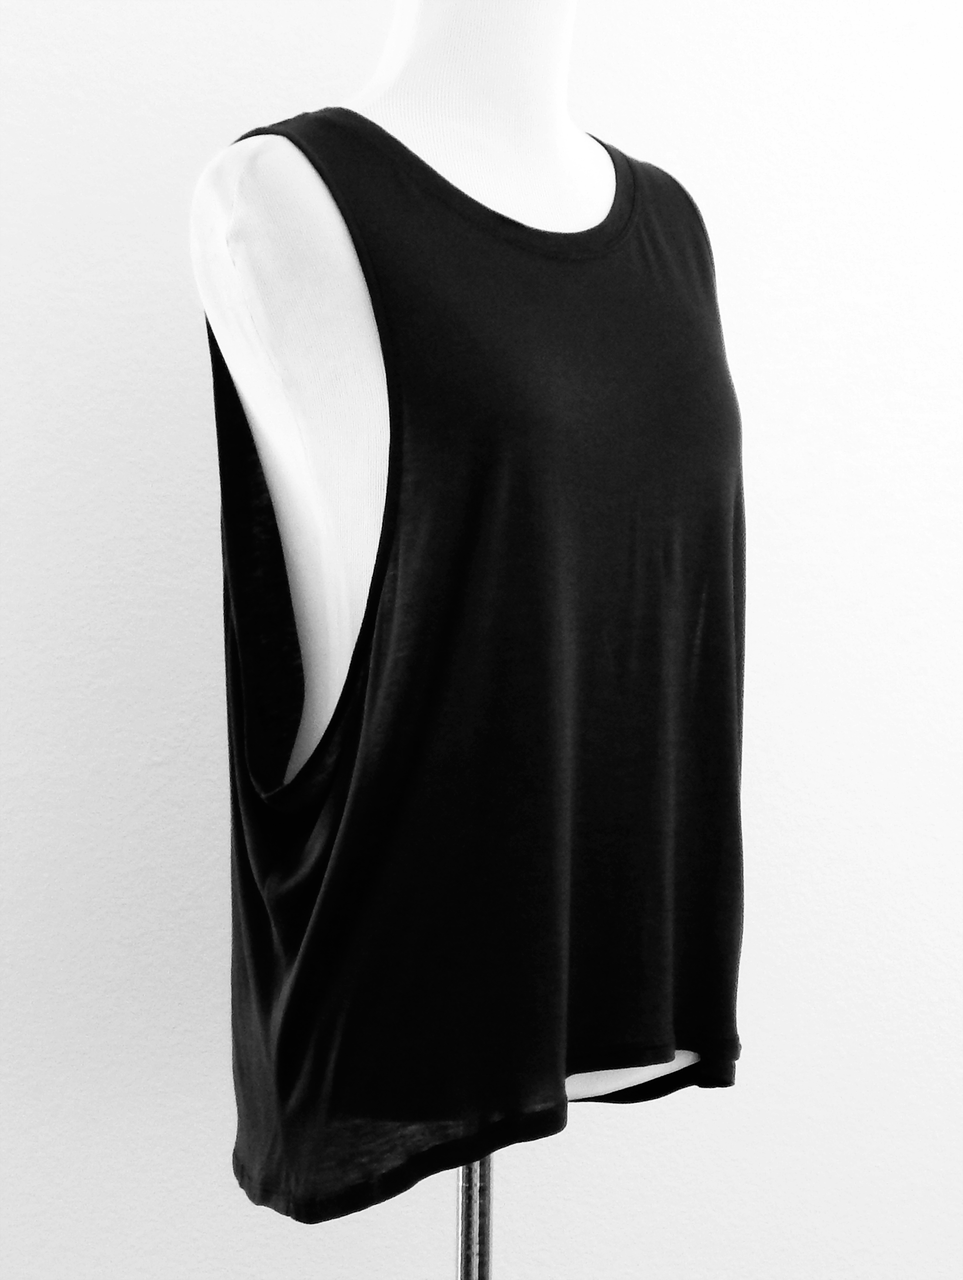 75776d954 The relax fit drop armhole muscle tee. Perfect worn over a bralette ...